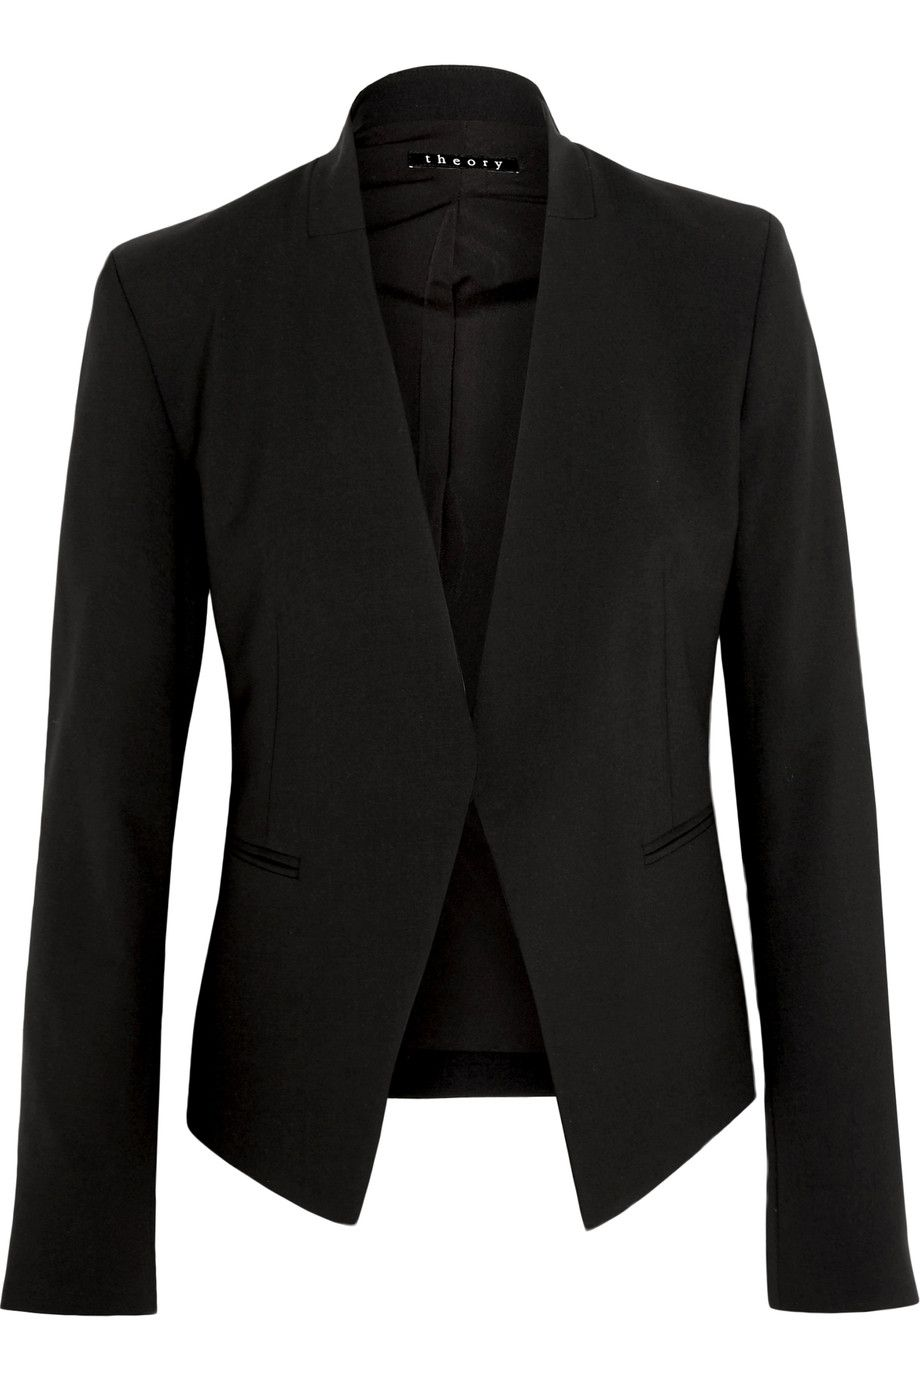 6315c06e95 Shop on-sale Theory Lanai stretch-wool crepe blazer. Browse other discount  designer Jackets & more on The Most Fashionable Fashion Outlet, THE  OUTNET.COM